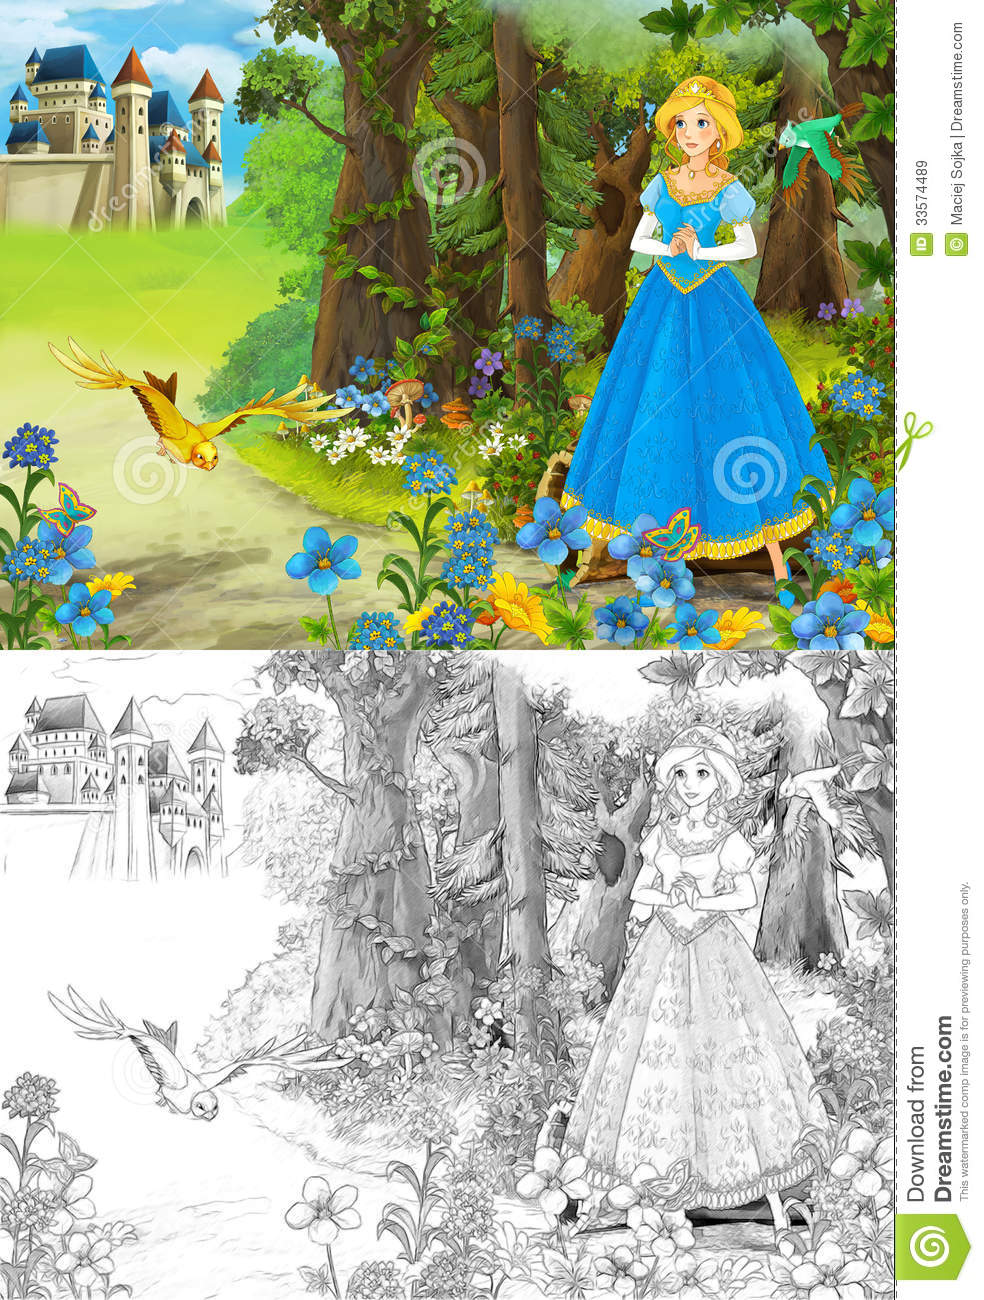 The Sketch Coloring Page - Artistic Style Fairy Tale Stock ...